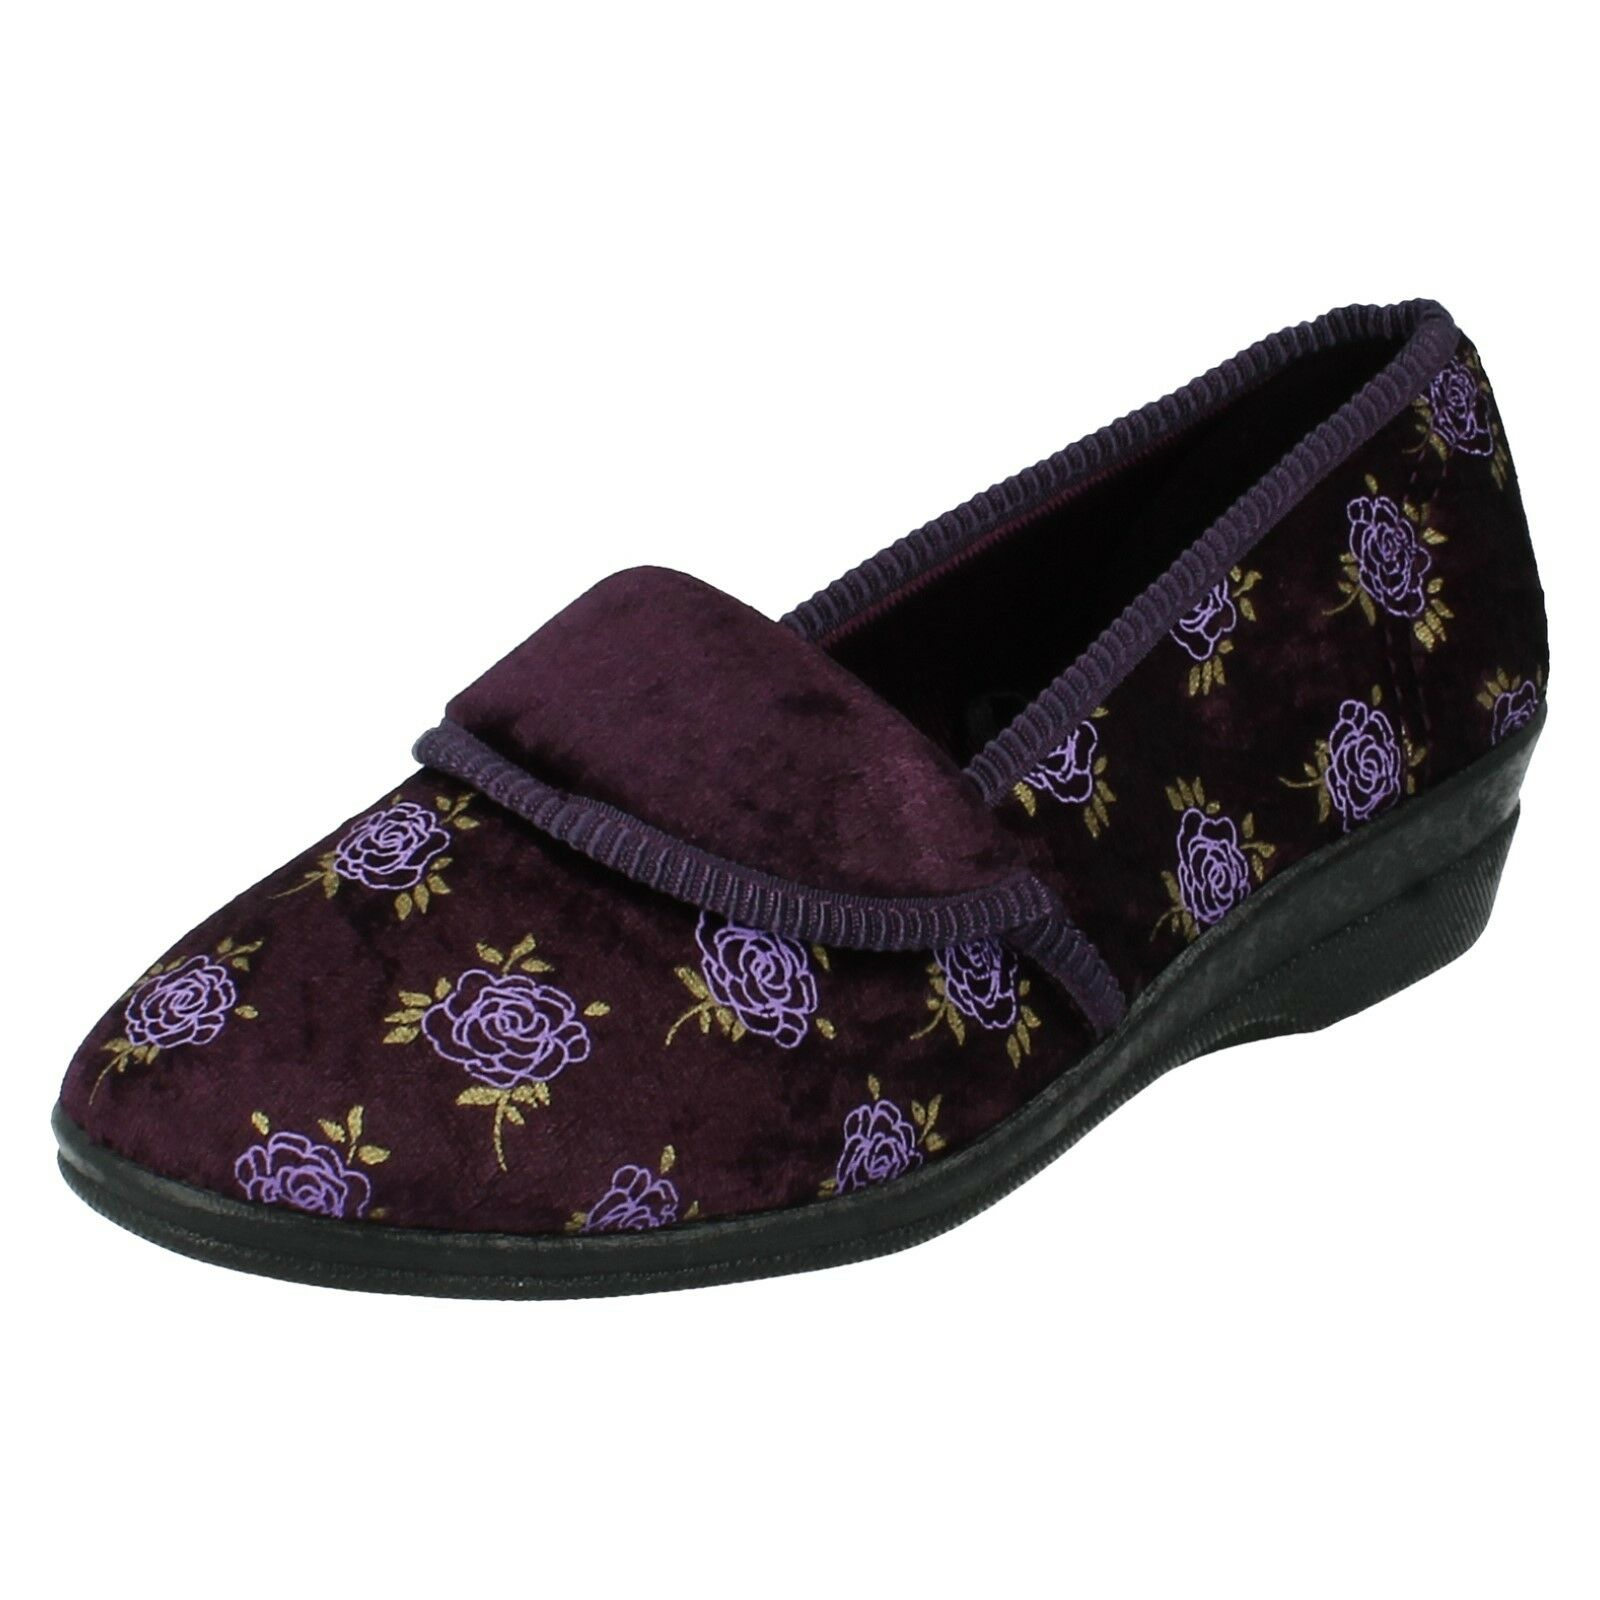 LADIES ROSE PRINT DESIGN CASUAL SLIP ON SLIPPERS SHOES 203112